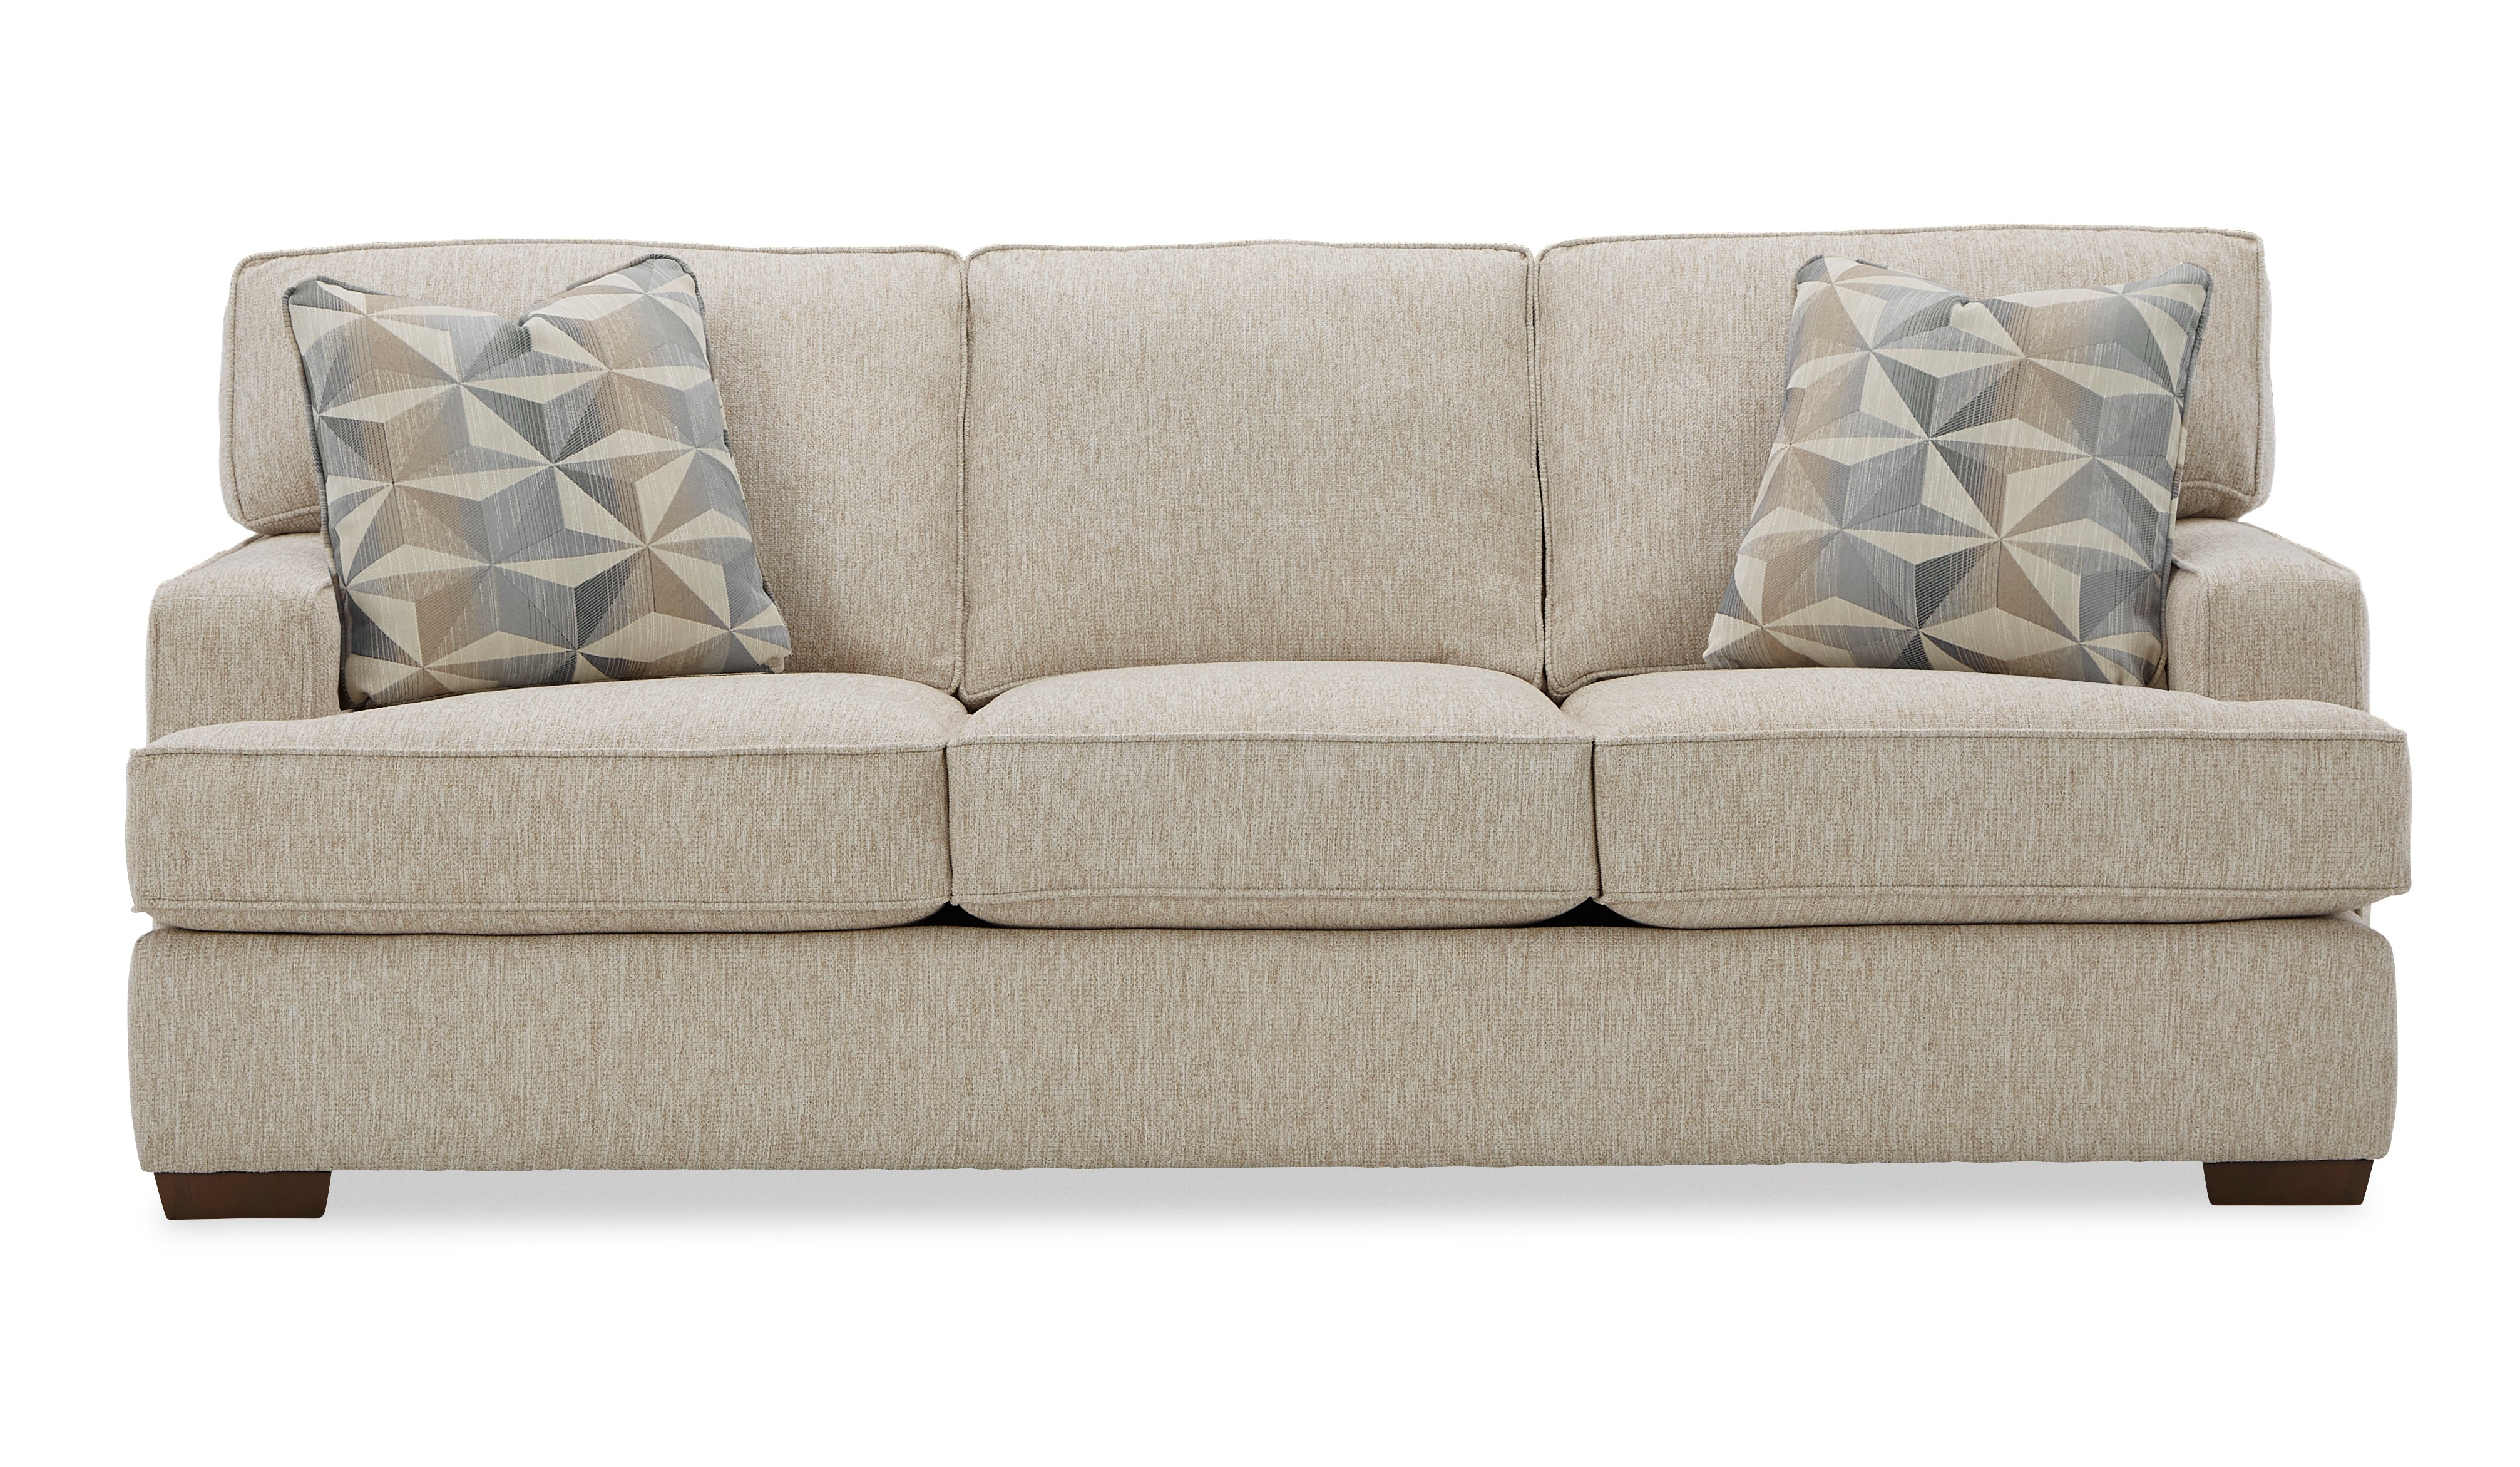 713650 Sofa by Craftmaster at Powell's Furniture and Mattress